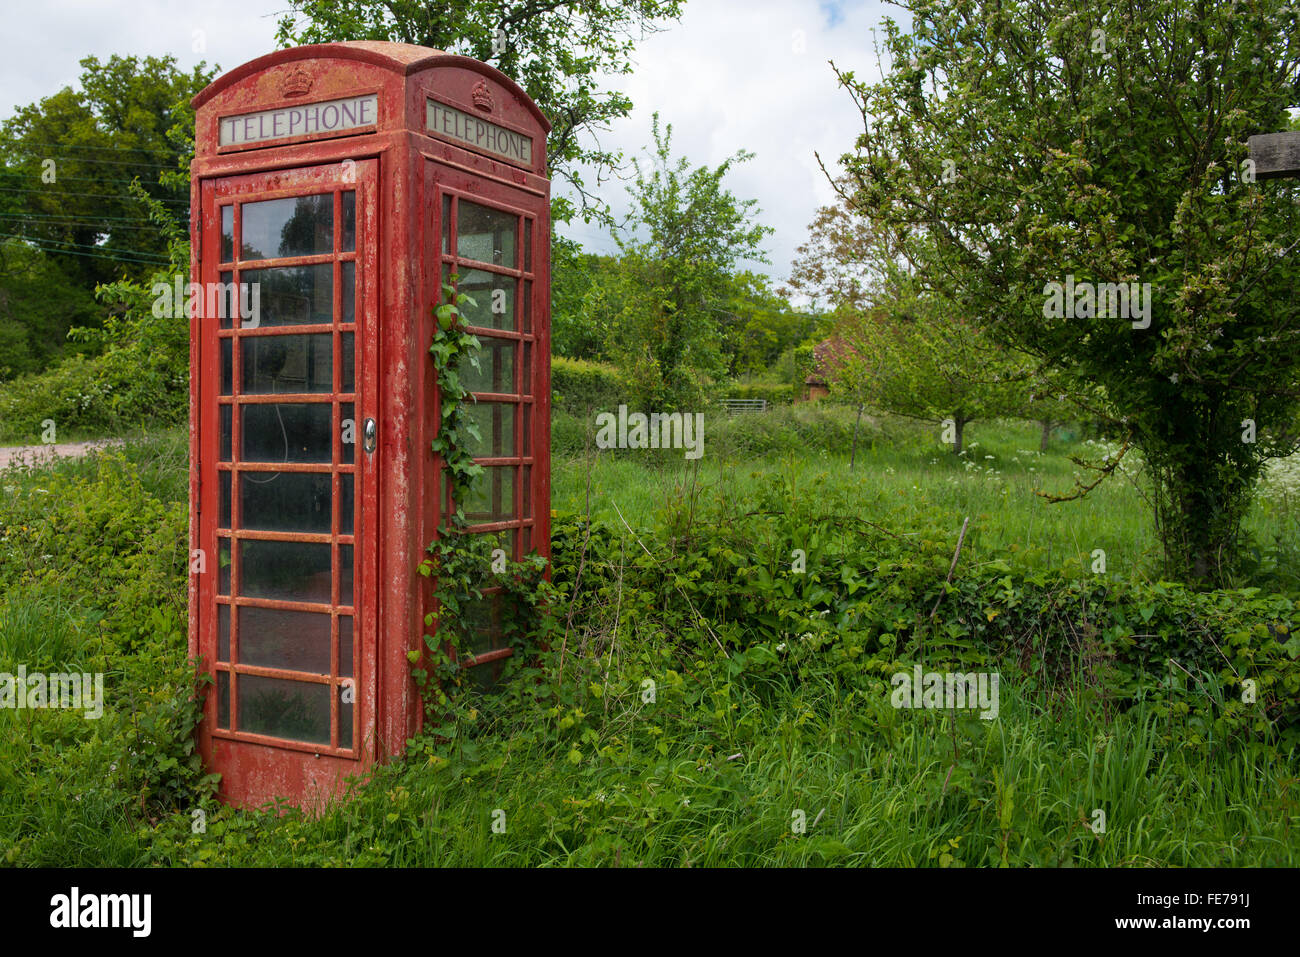 Traditional red British telephone kiosk being overgrown by ivy - Stock Image